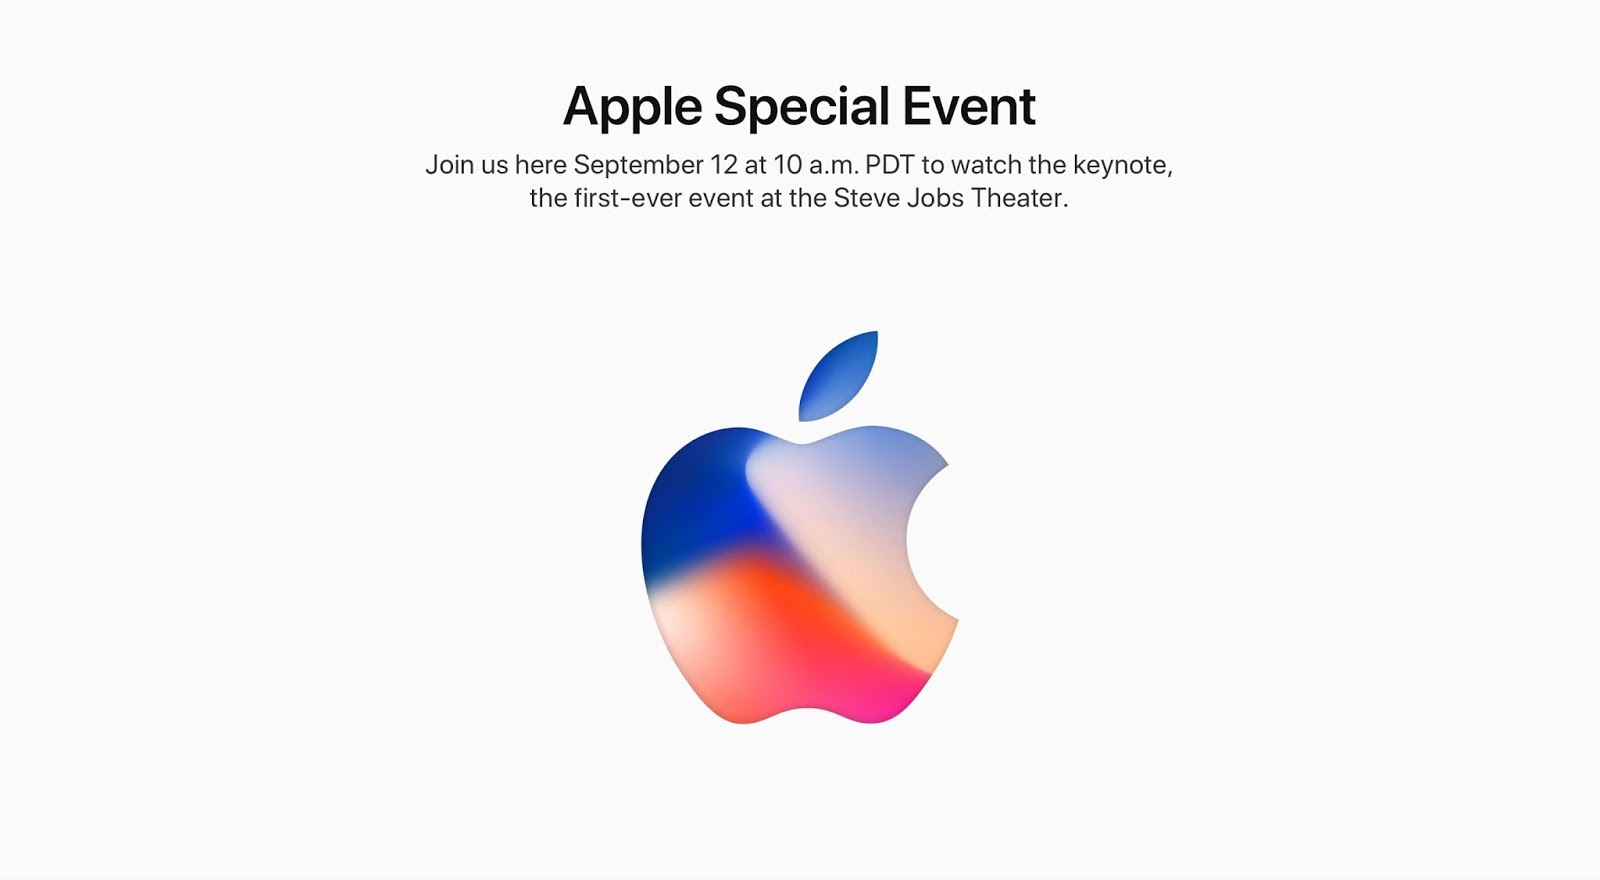 Apple Special Event September 2017 Iphone 8 Hero 1